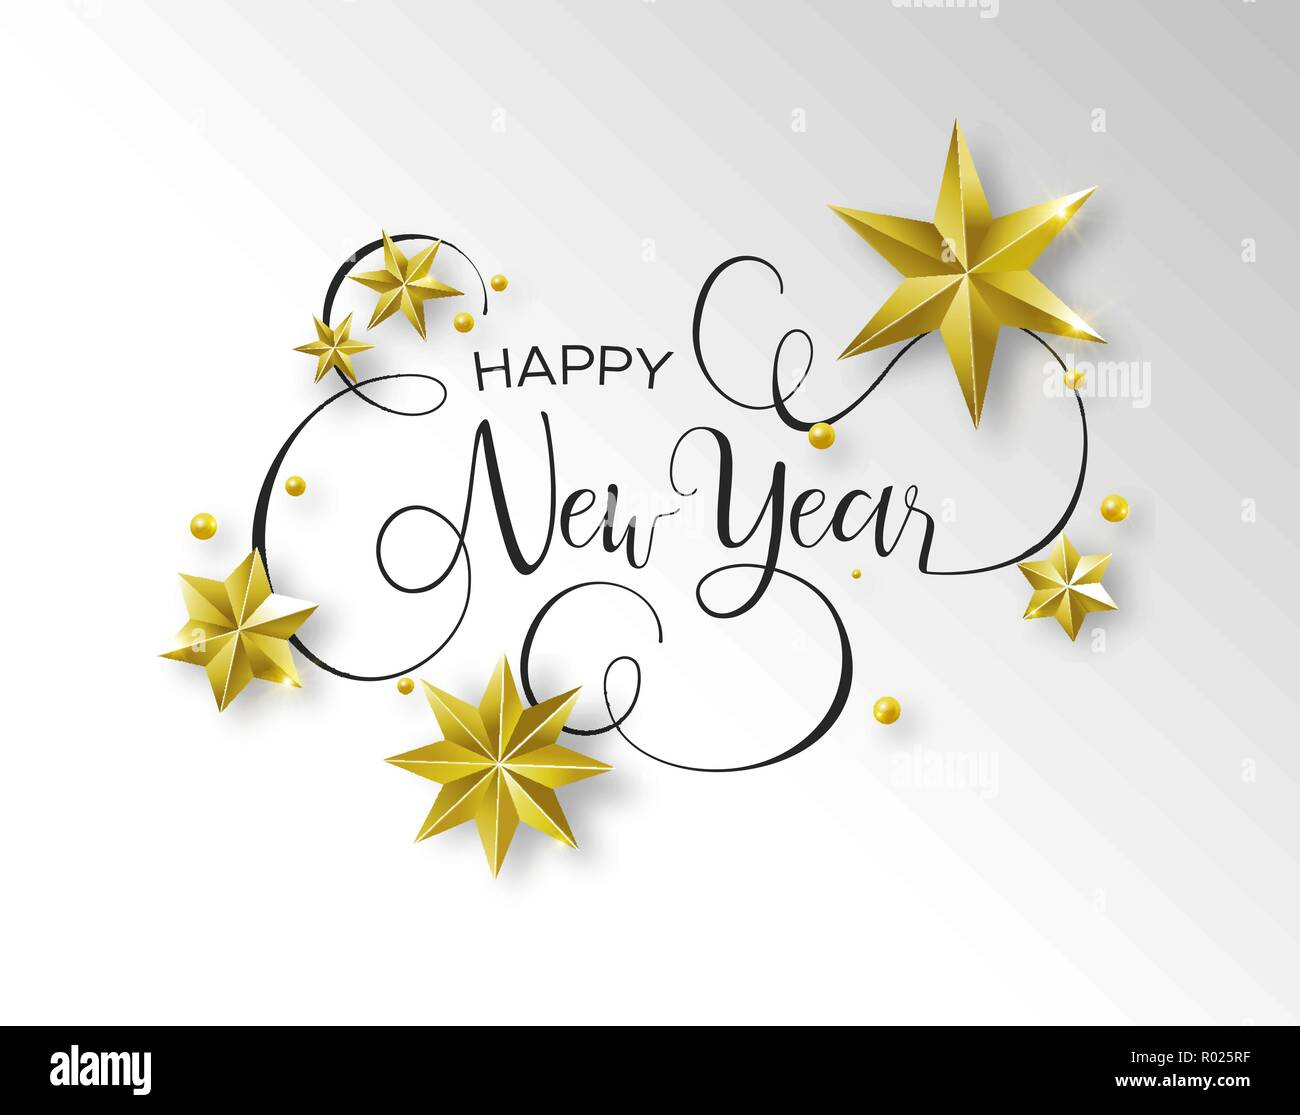 happy new year calligraphic greeting card or party invitation illustration handwritten typography text quote with festive 3d gold stars elegant holi